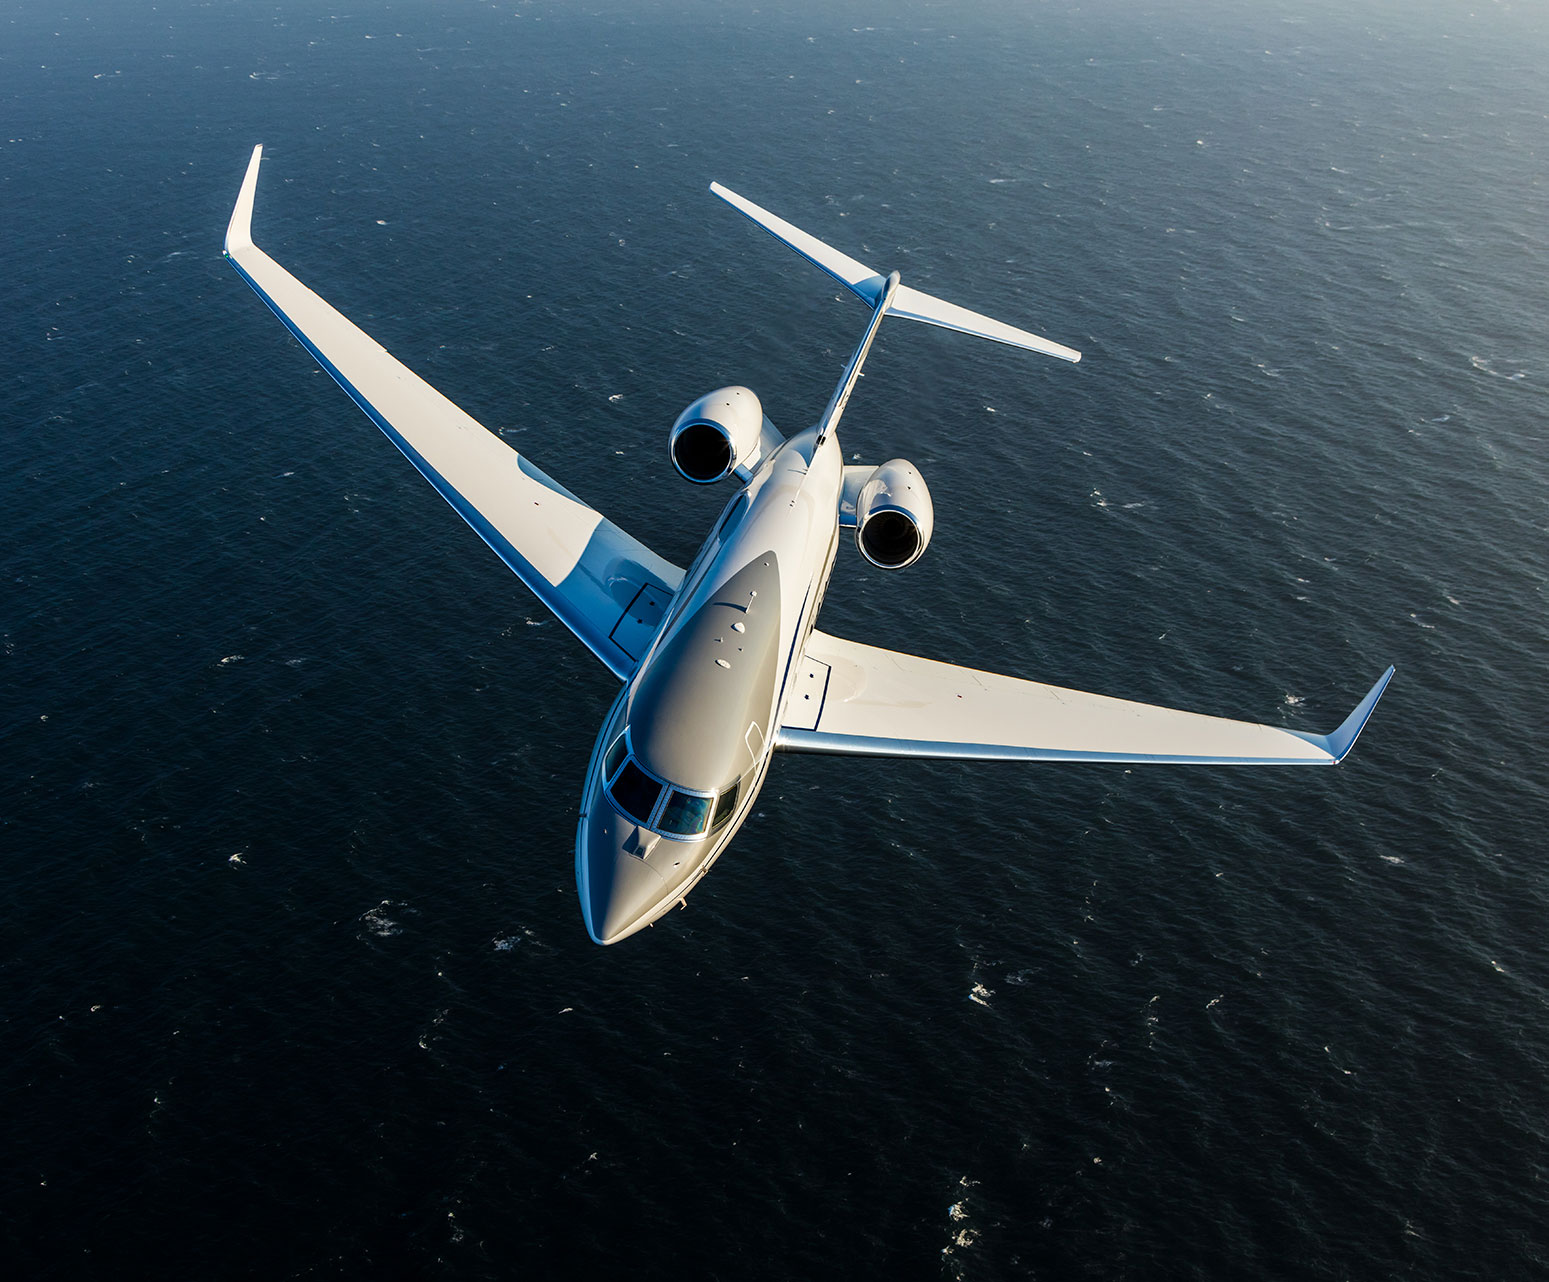 Gulfstream G650ER flying over water.